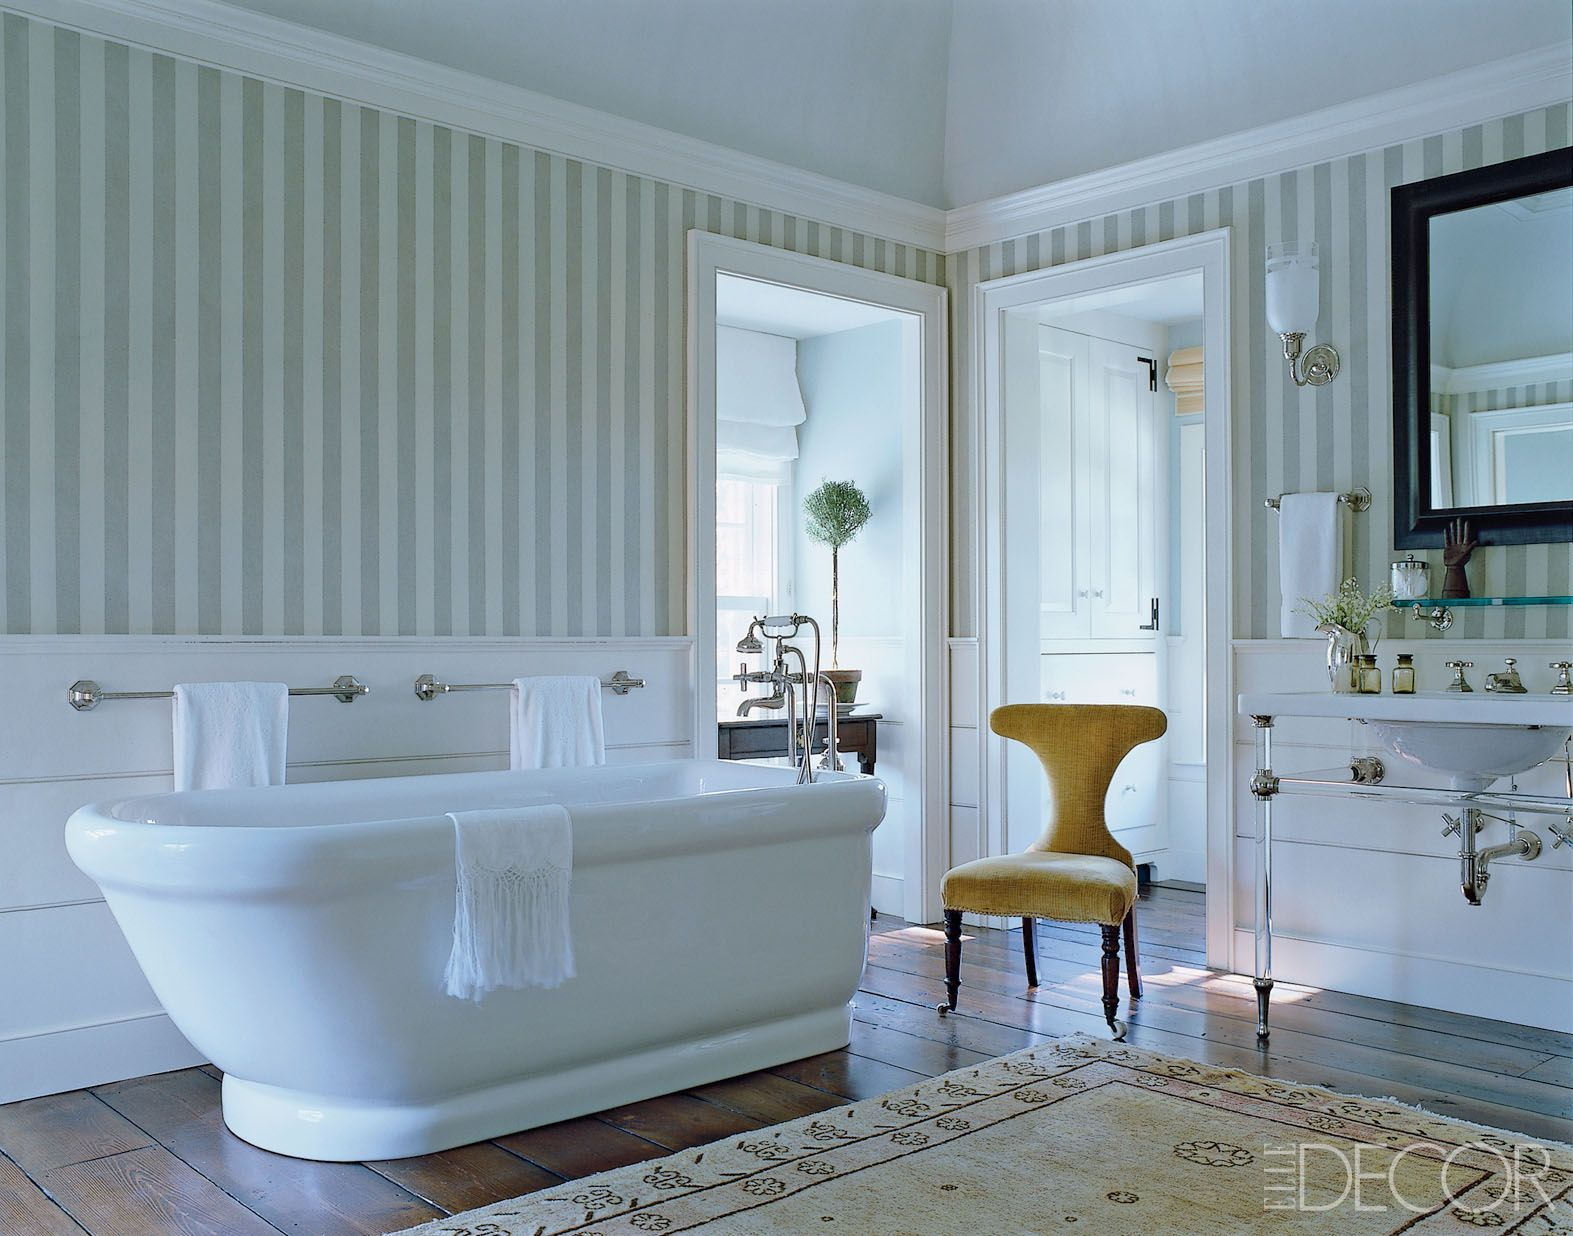 Bathroom Designe 80 Beautiful Bathrooms Ideas & Pictures  Bathroom Design Photo .